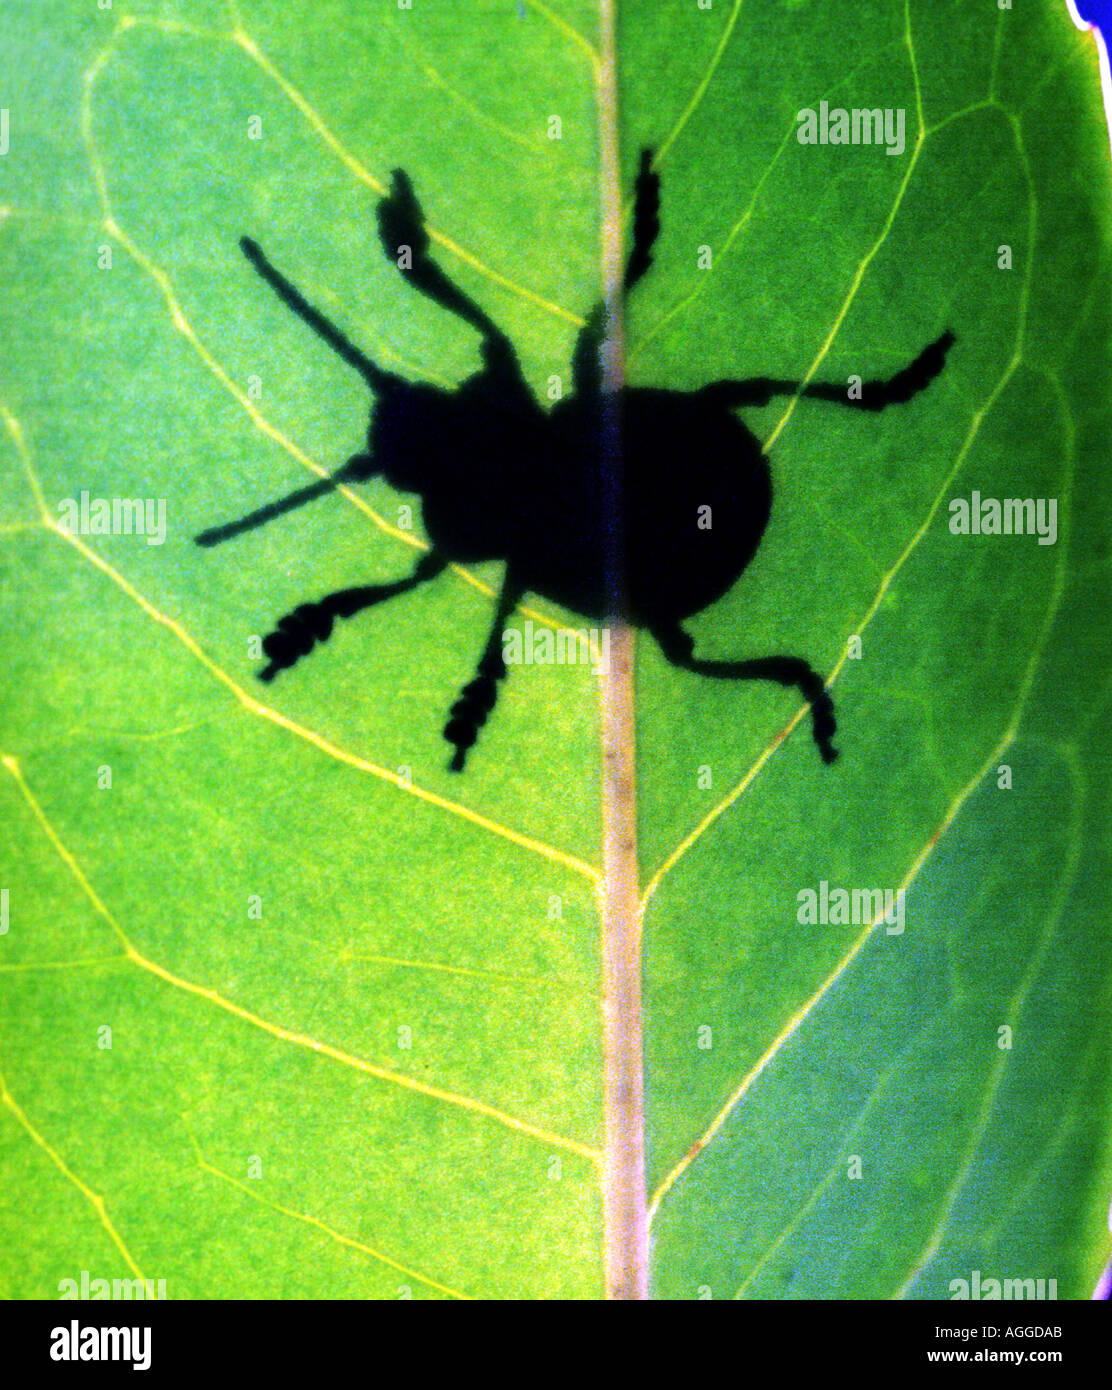 shadow of a bug on a leaf - Stock Image